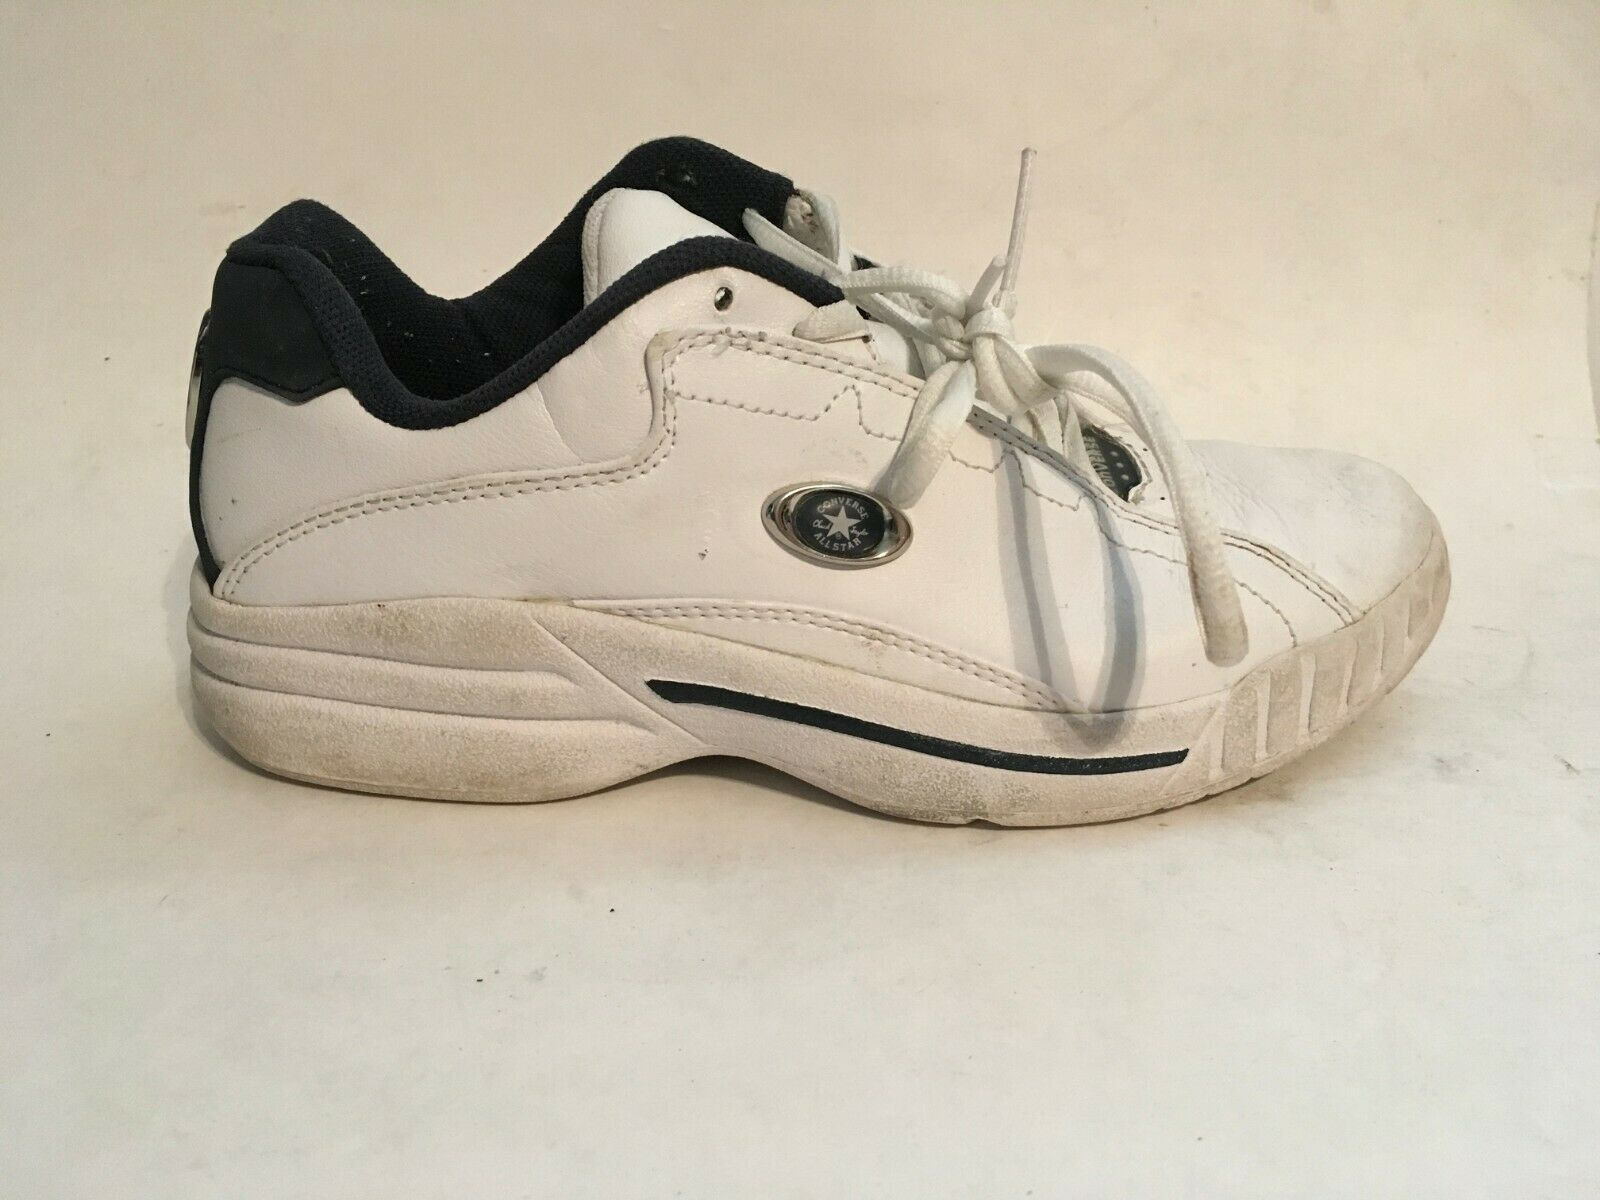 Converse All-Star Womens White Leather Athletic Running Walking Shoes sz 5 image 3